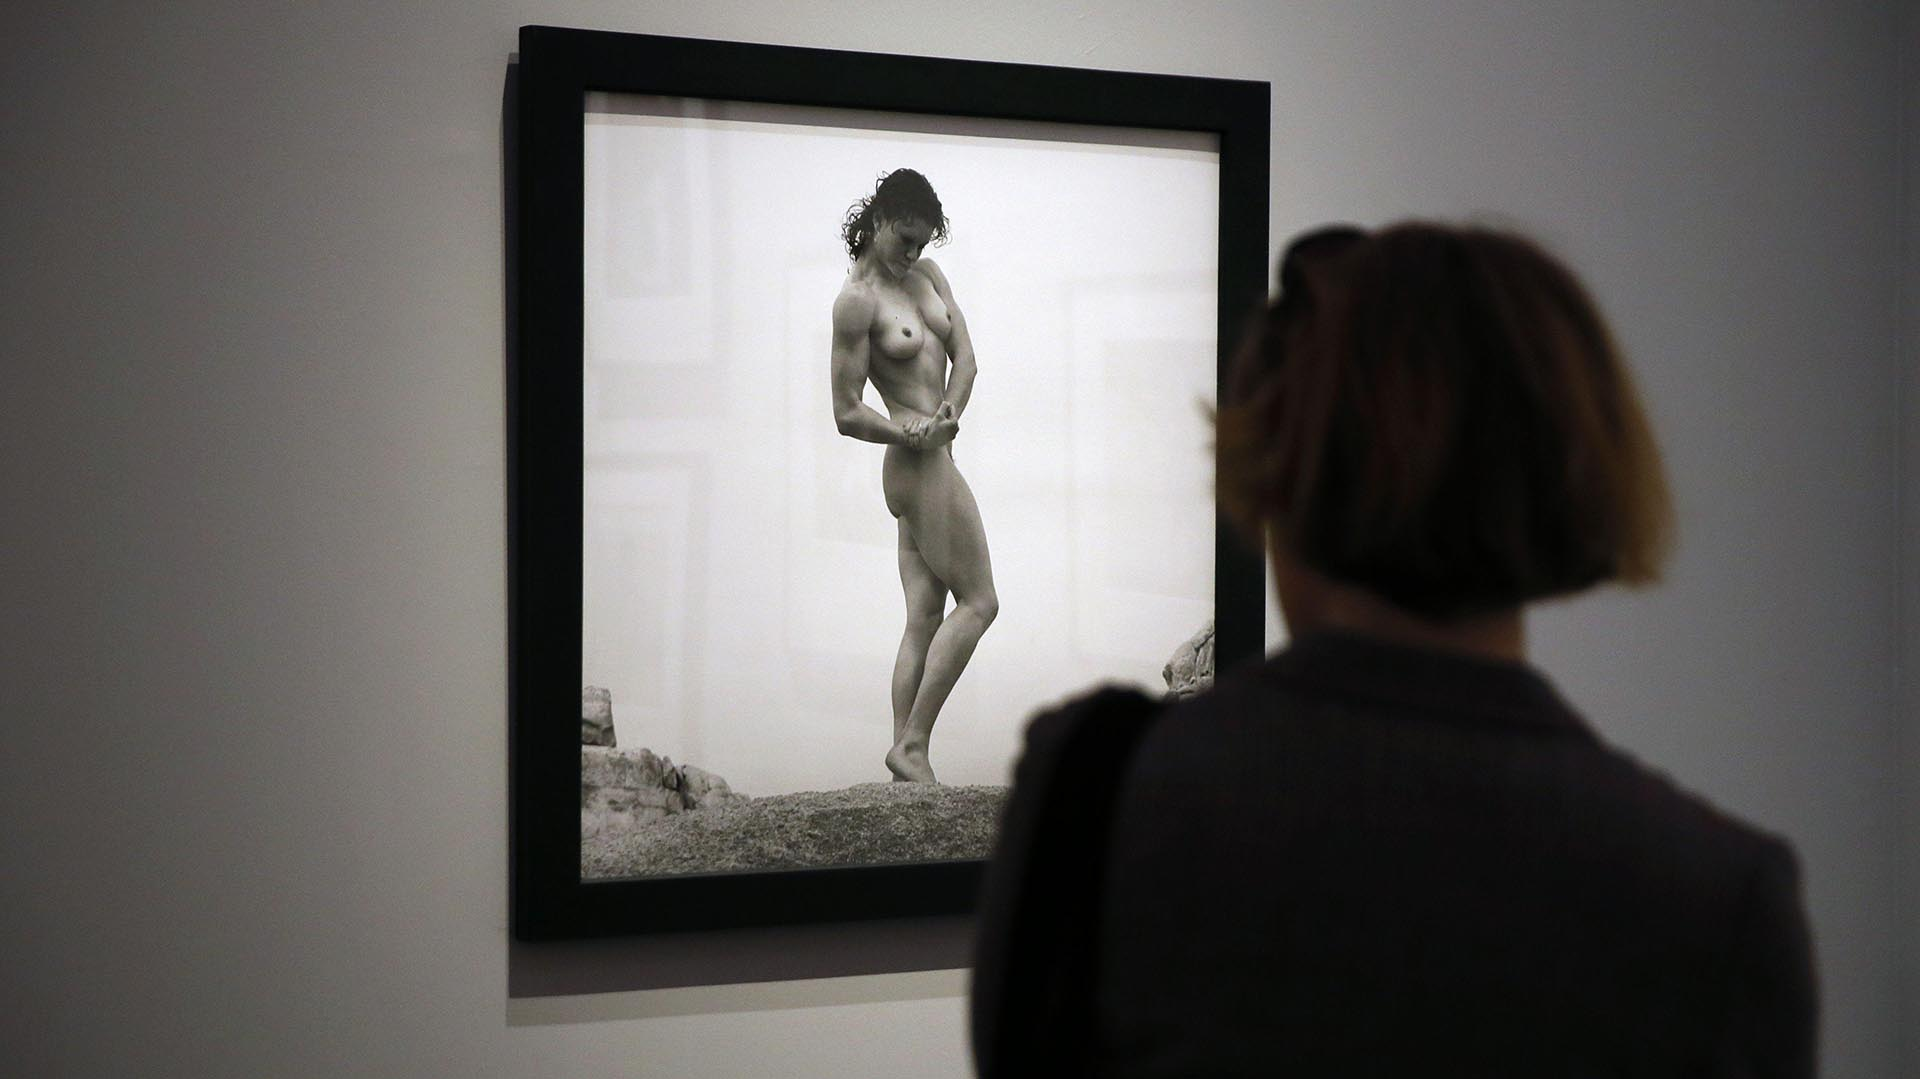 Un visitante en una muestra de fotos de Mapplethorpe, en 2014. AFP PHOTO / PATRICK KOVARIK